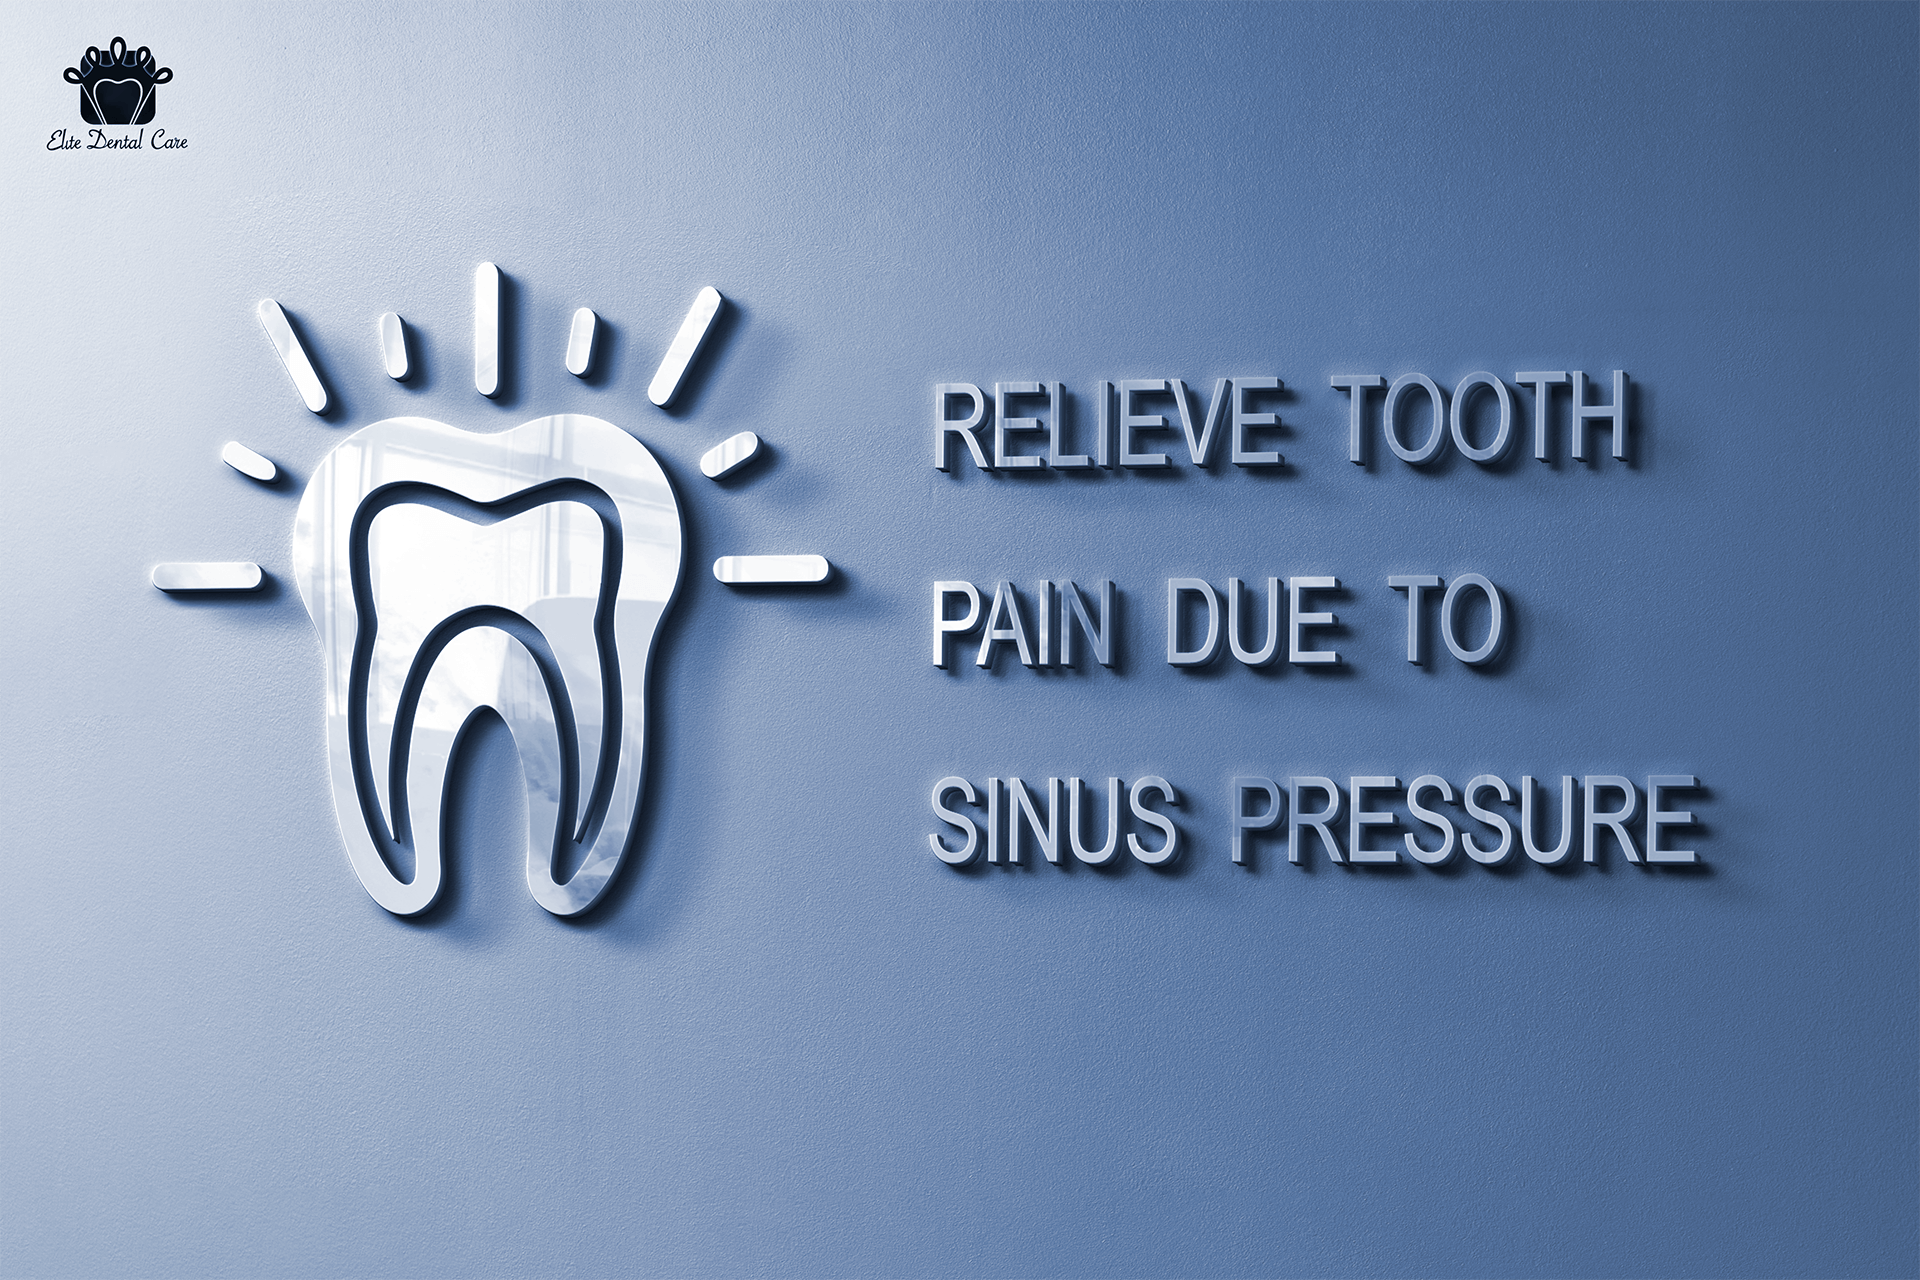 How to Relieve Tooth Pain Due to Sinus Pressure